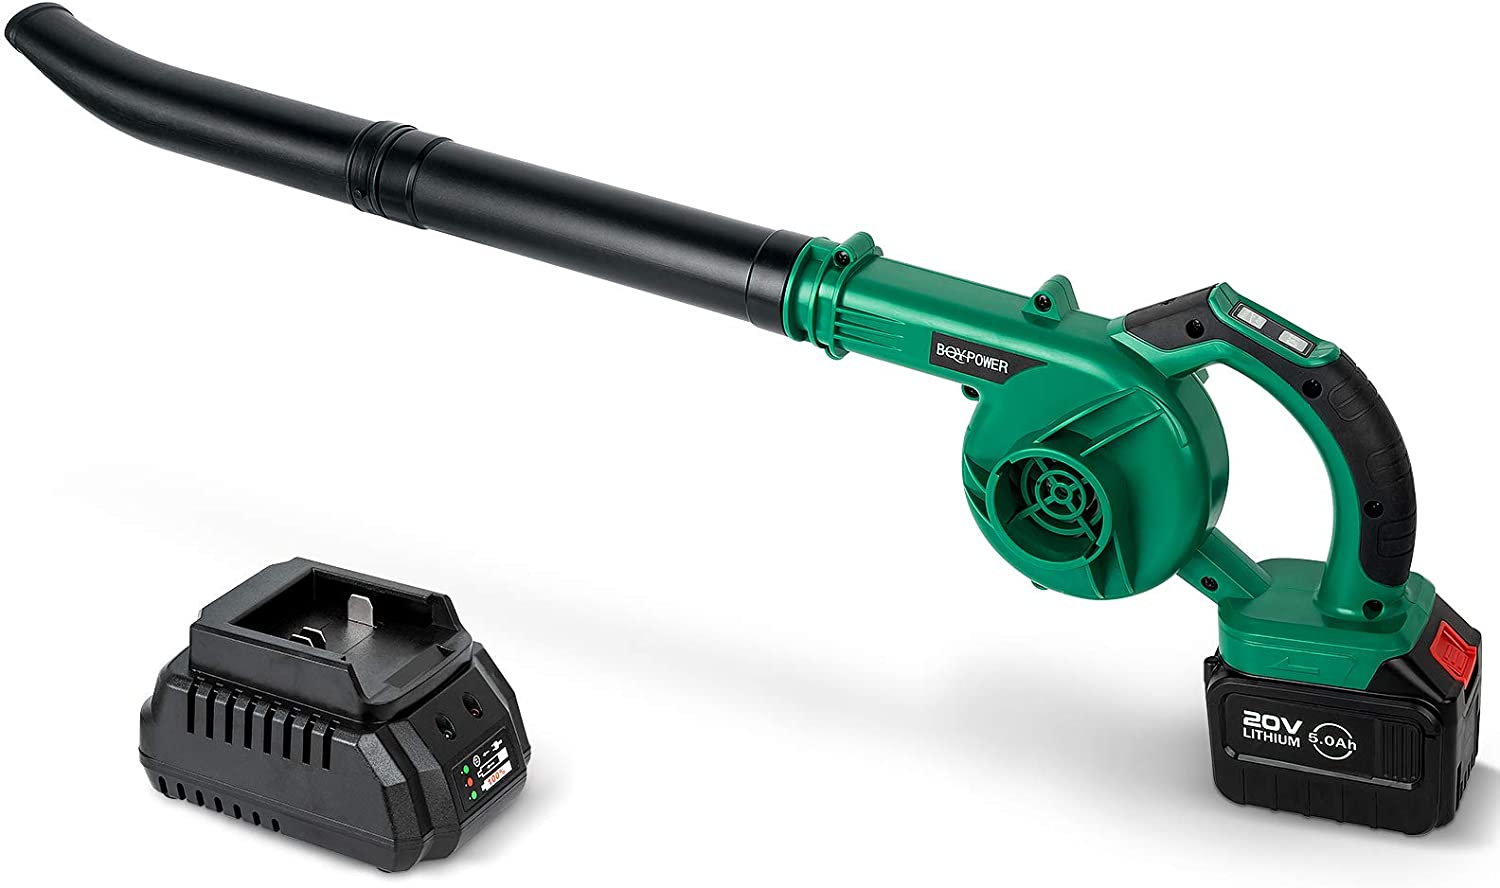 Leaf Blower, 2-in-1 Sweeper Vacuum, BQYPOWER 20V 150MPH Electric Leaf Blower 5.0Ah Lithium Battery Variable Speed Leaf Blower Cordless with Battery and Charger for Blowing Leaves, Snow Debris, Dust